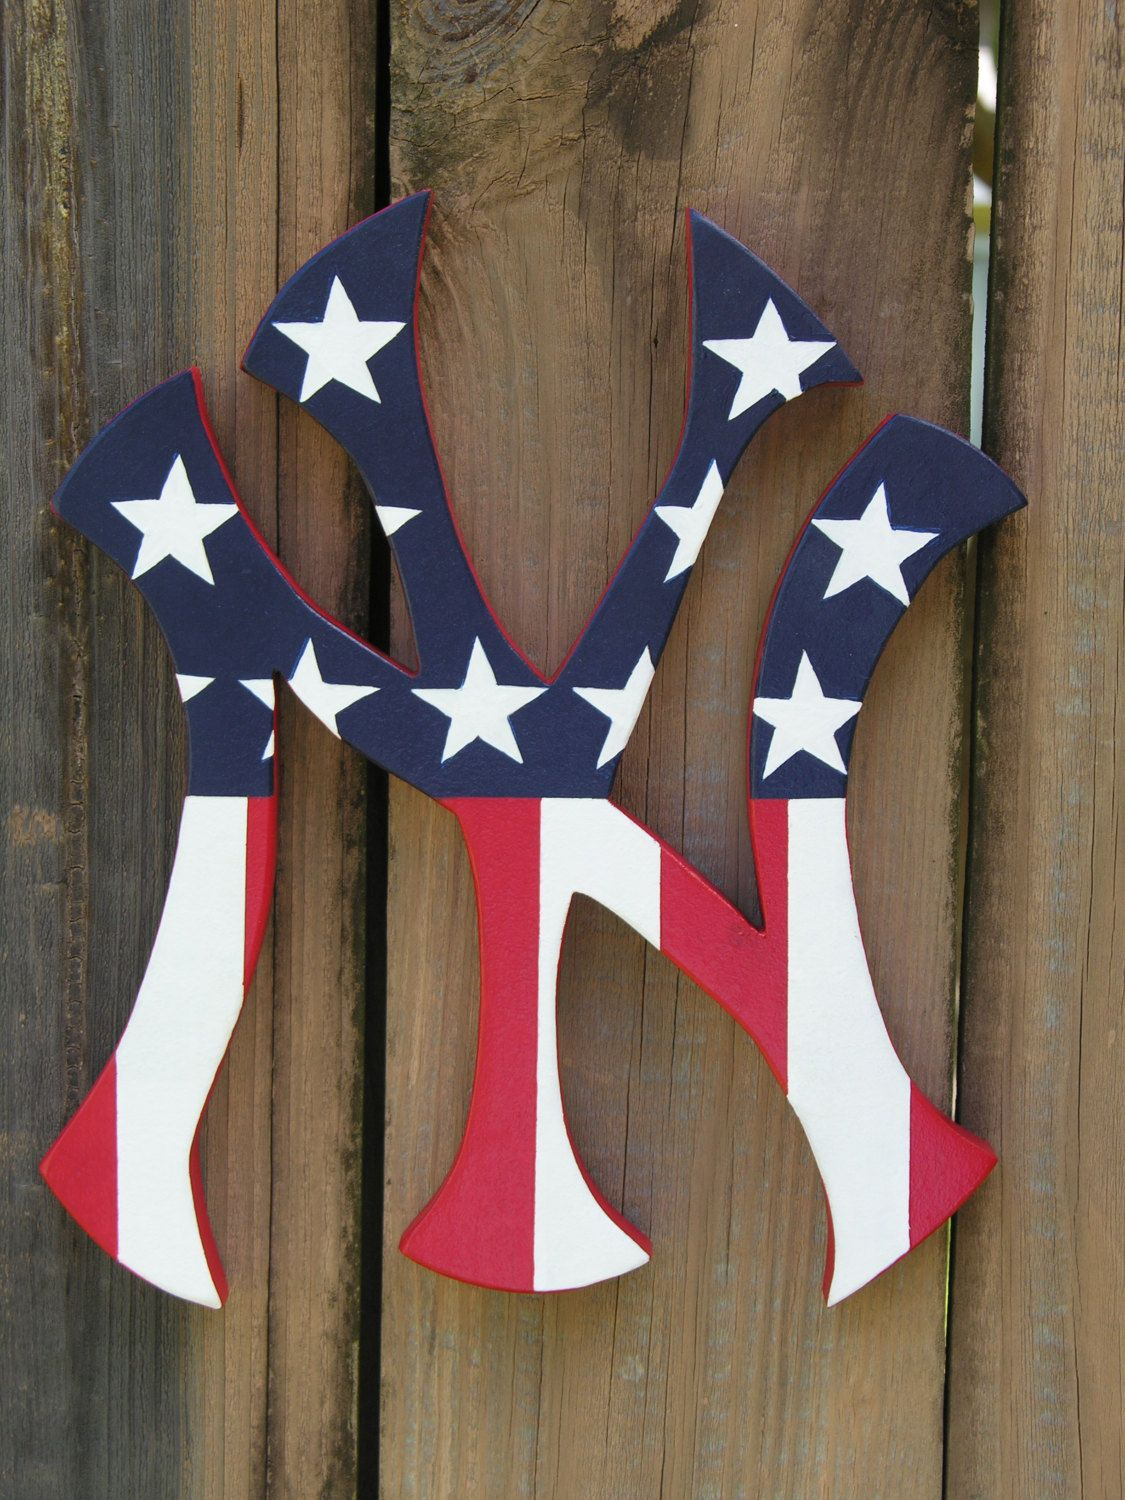 Painted Stars And Stripes New York Yankees Logo Etsy New York Yankees Logo Yankees Logo New York Yankees